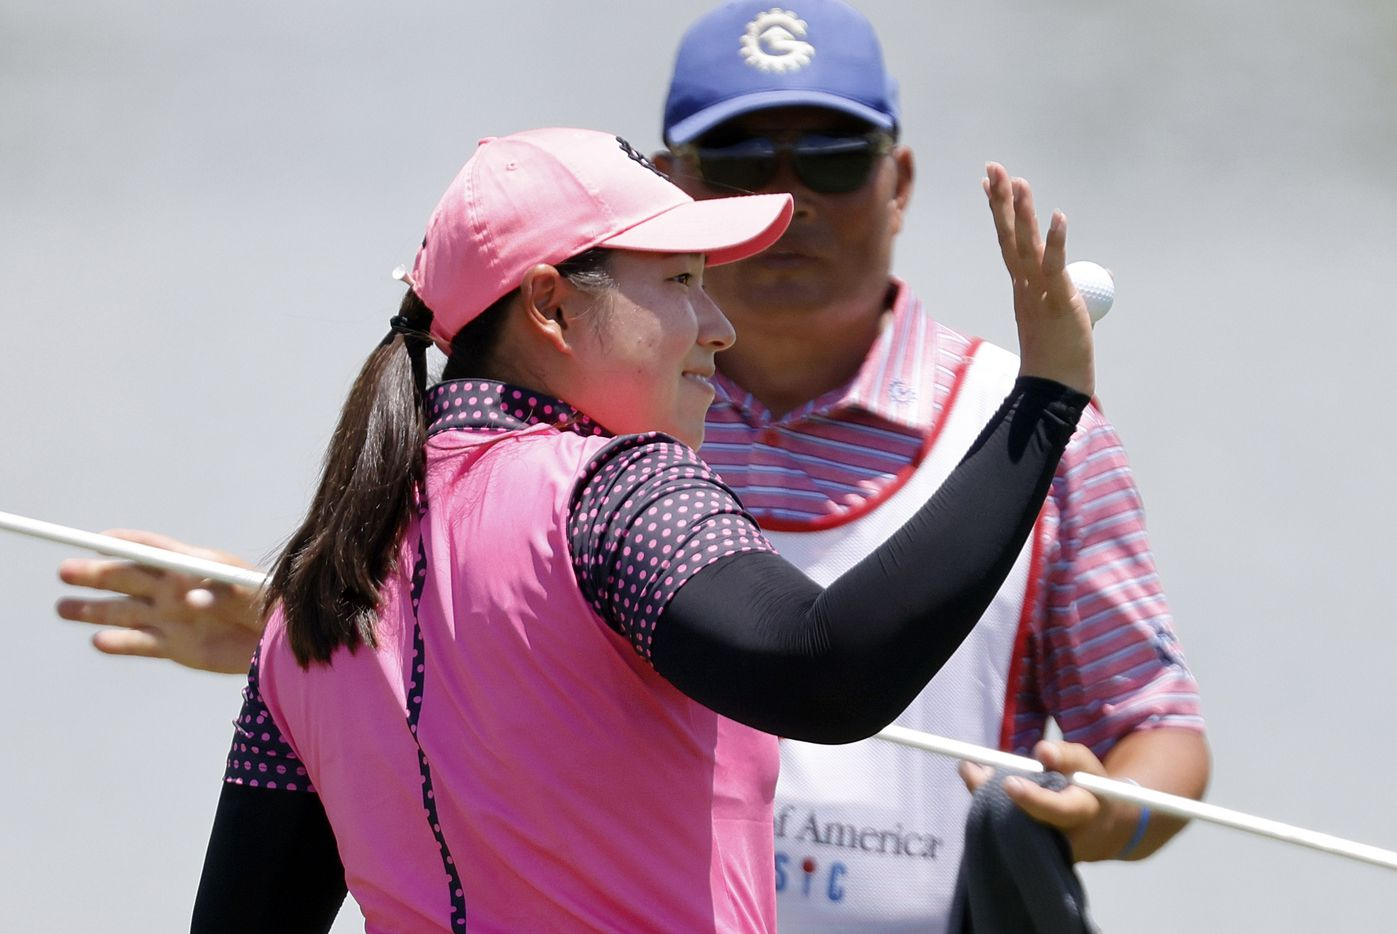 Professional golfer Min-G Kim waves to spectators after finishing her round on No. 18 during the opening round of the LPGA VOA Classic at the Old American Golf Club in The Colony, Texas, Thursday, July 1, 2021. Kim shot a 6-under. (Tom Fox/The Dallas Morning News)